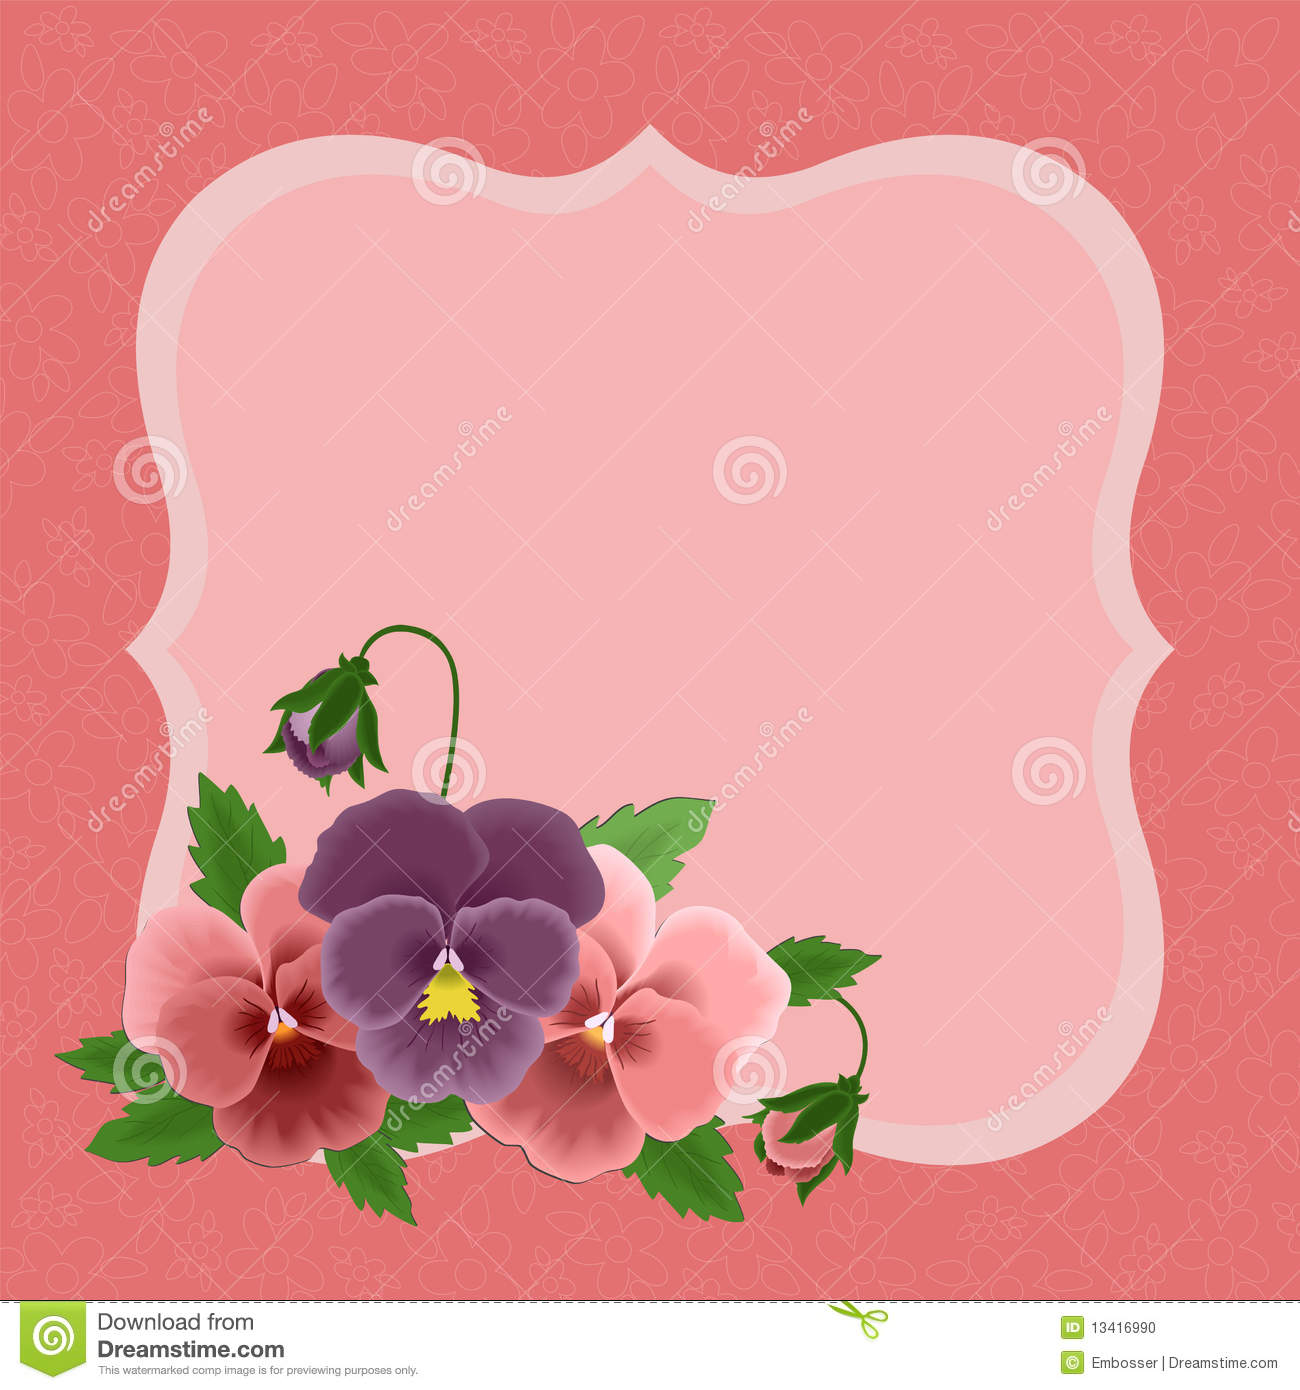 Greetings Card For Mothers Day Stock Vector Illustration Of